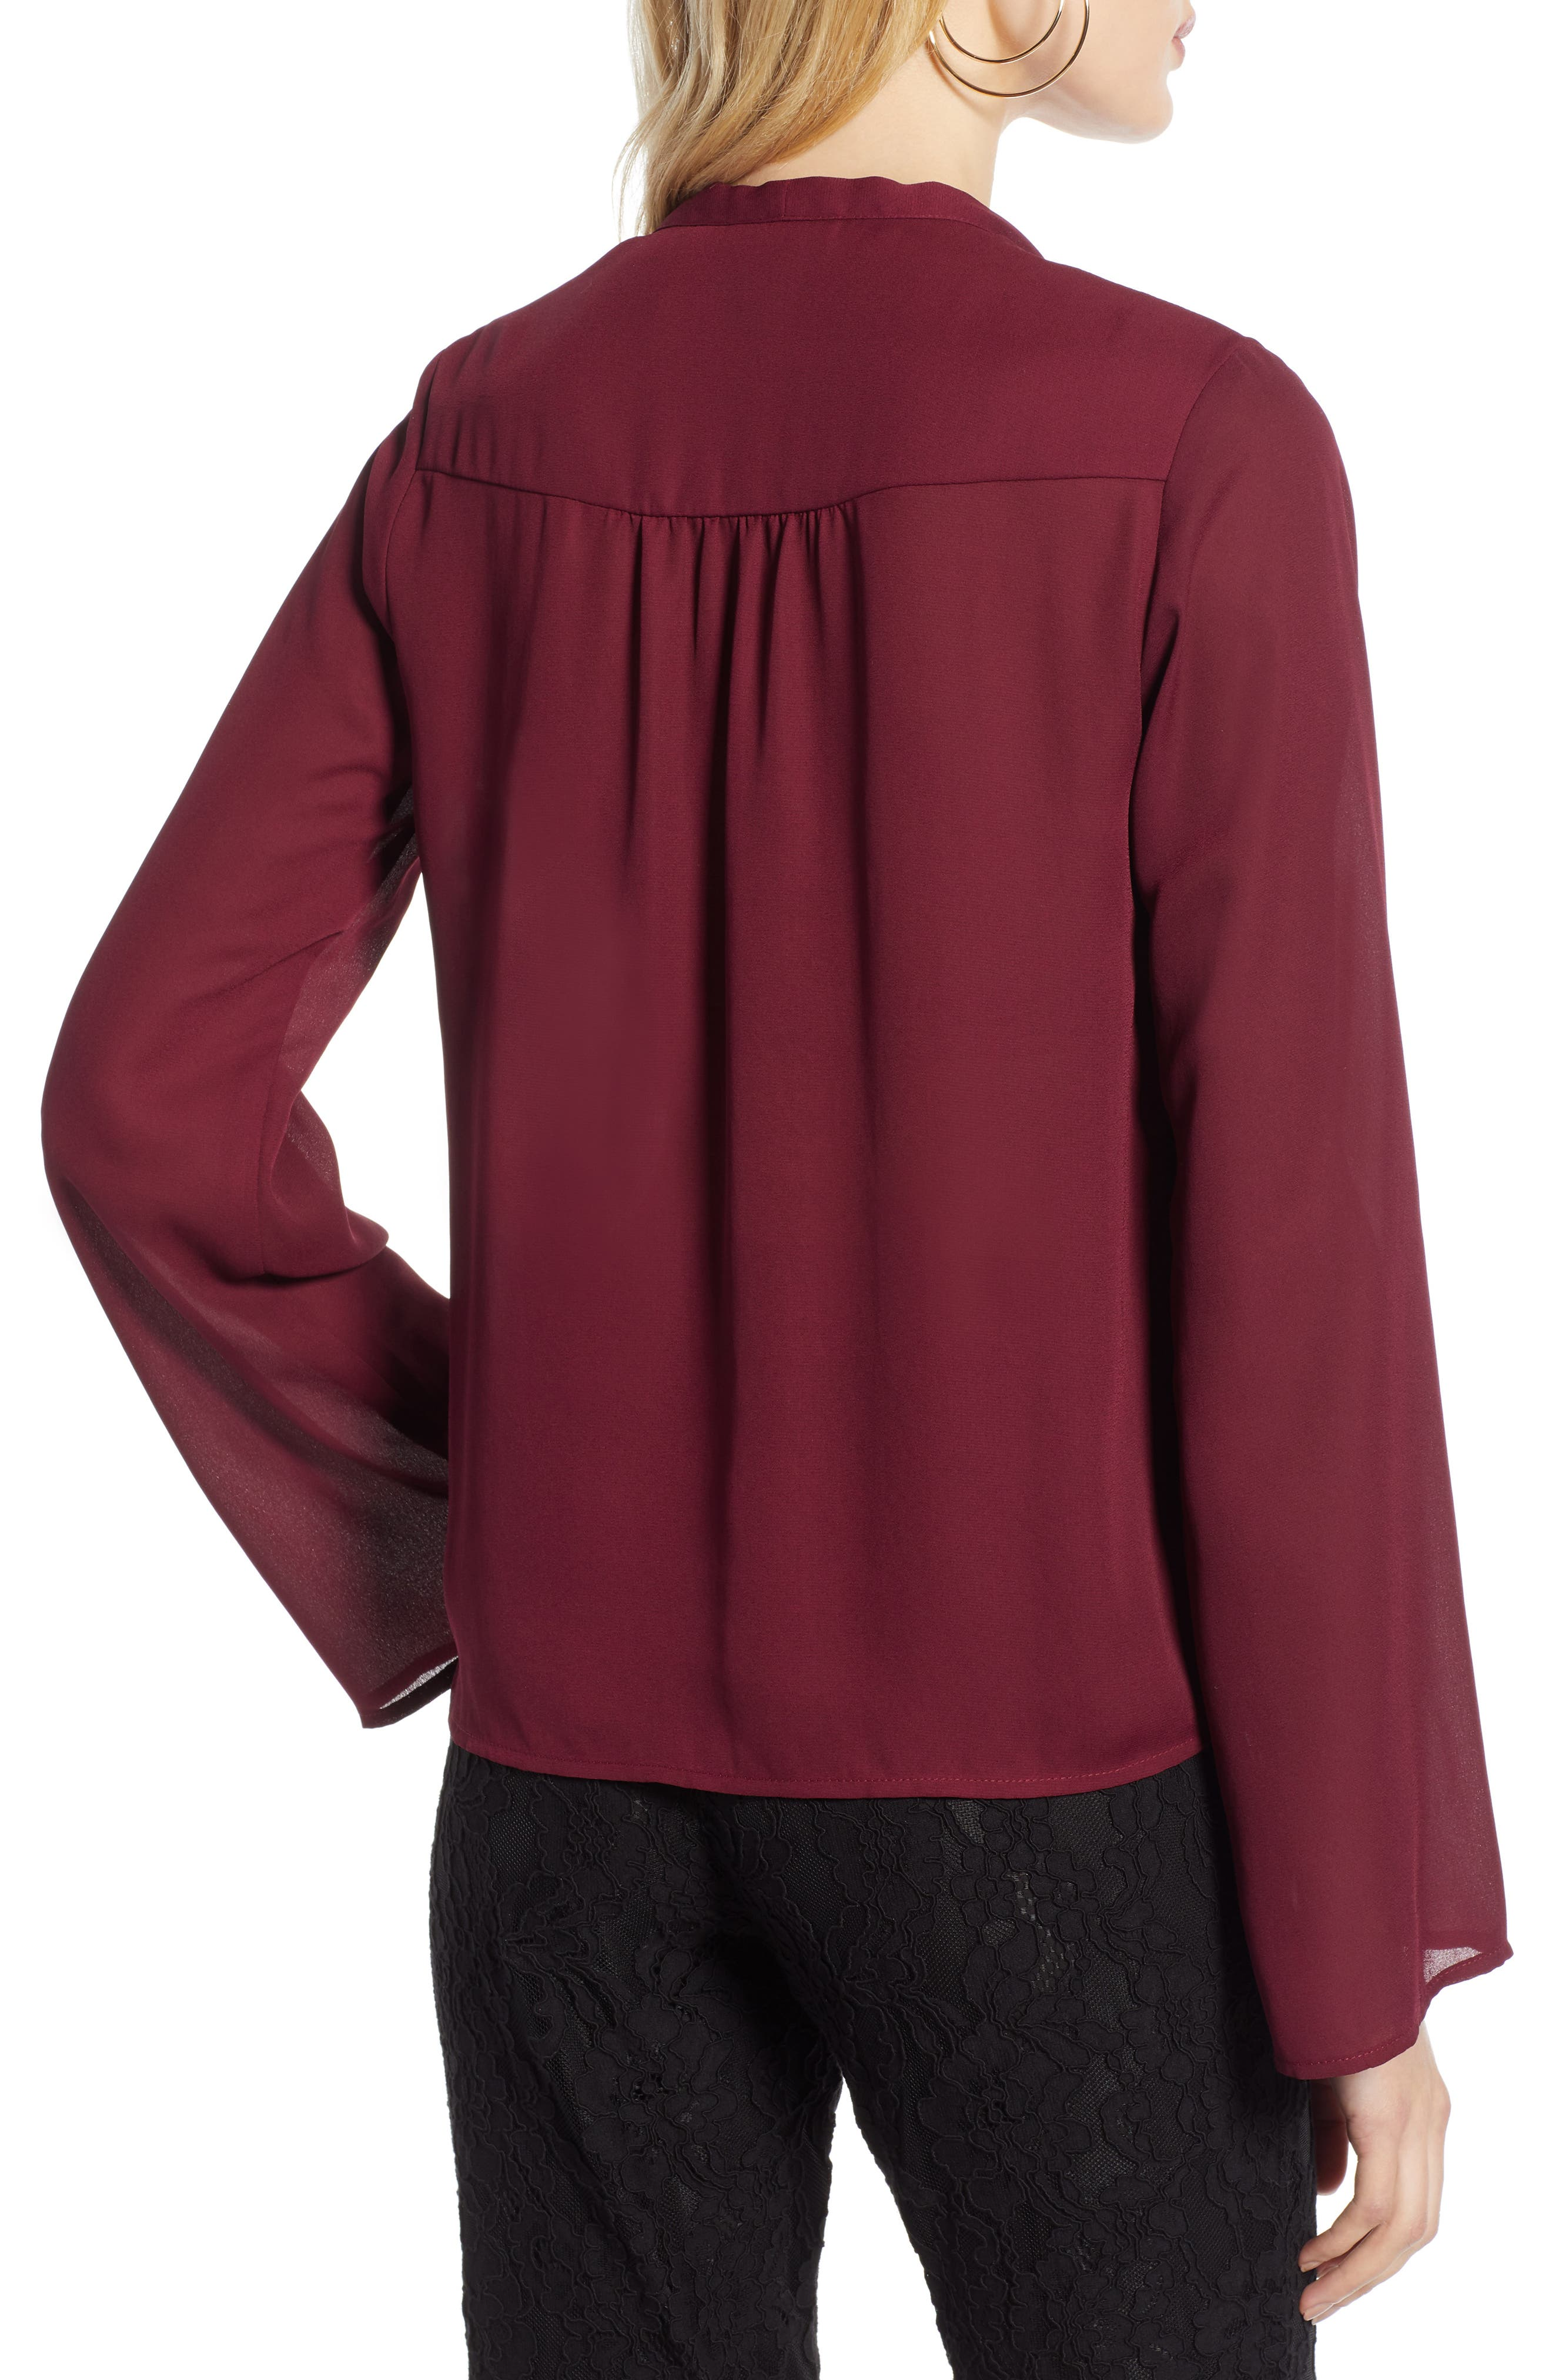 0275b308dc2b1c Gibson x Glam Squad Sheaffer Lace Top (Regular   Petite) (Nordstrom  Exclusive)